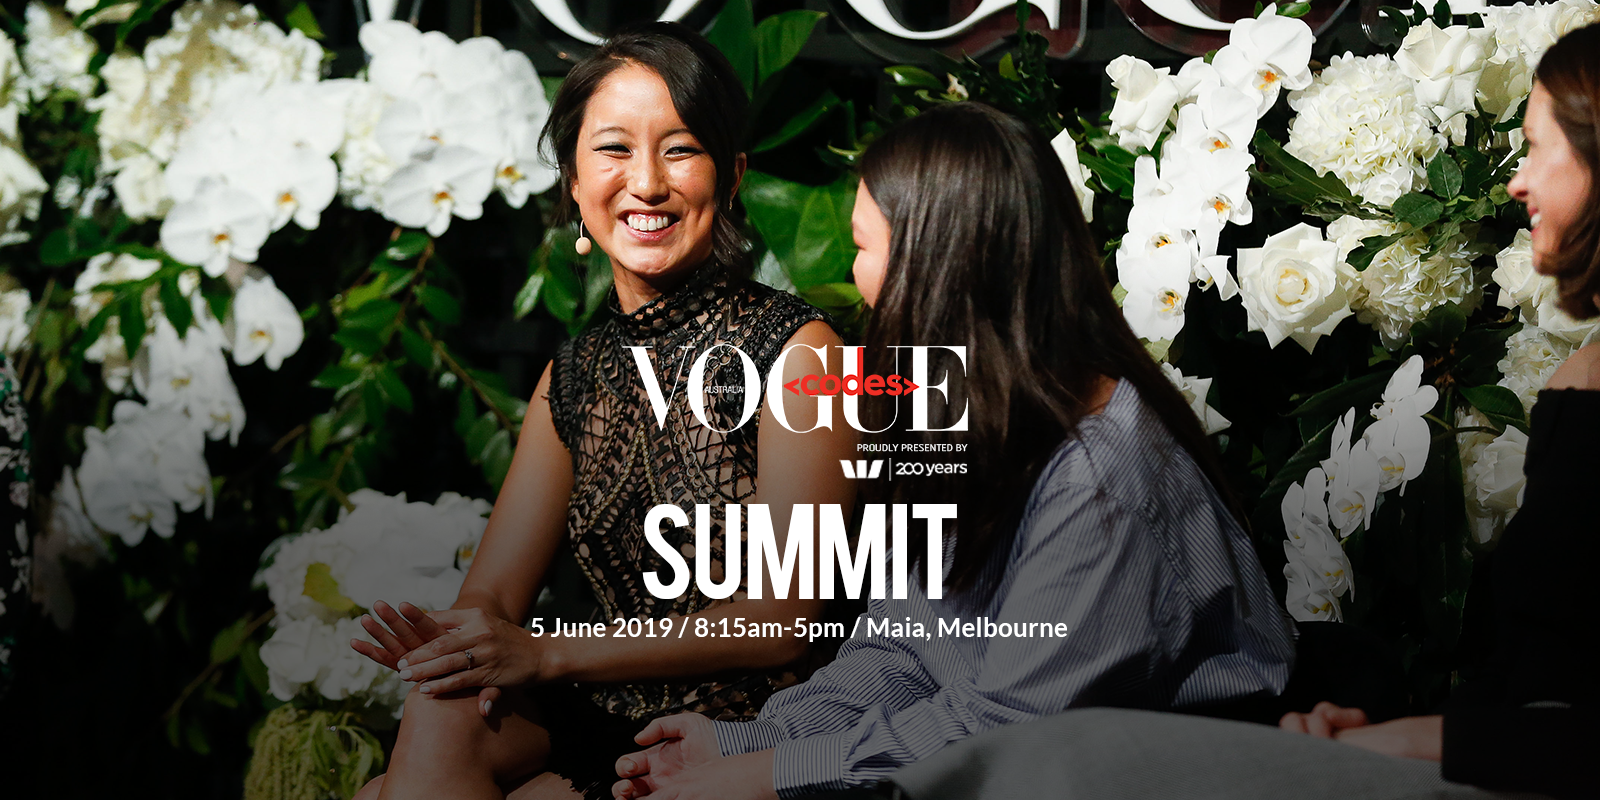 vogue-codessummit-melbourne-desktop.png